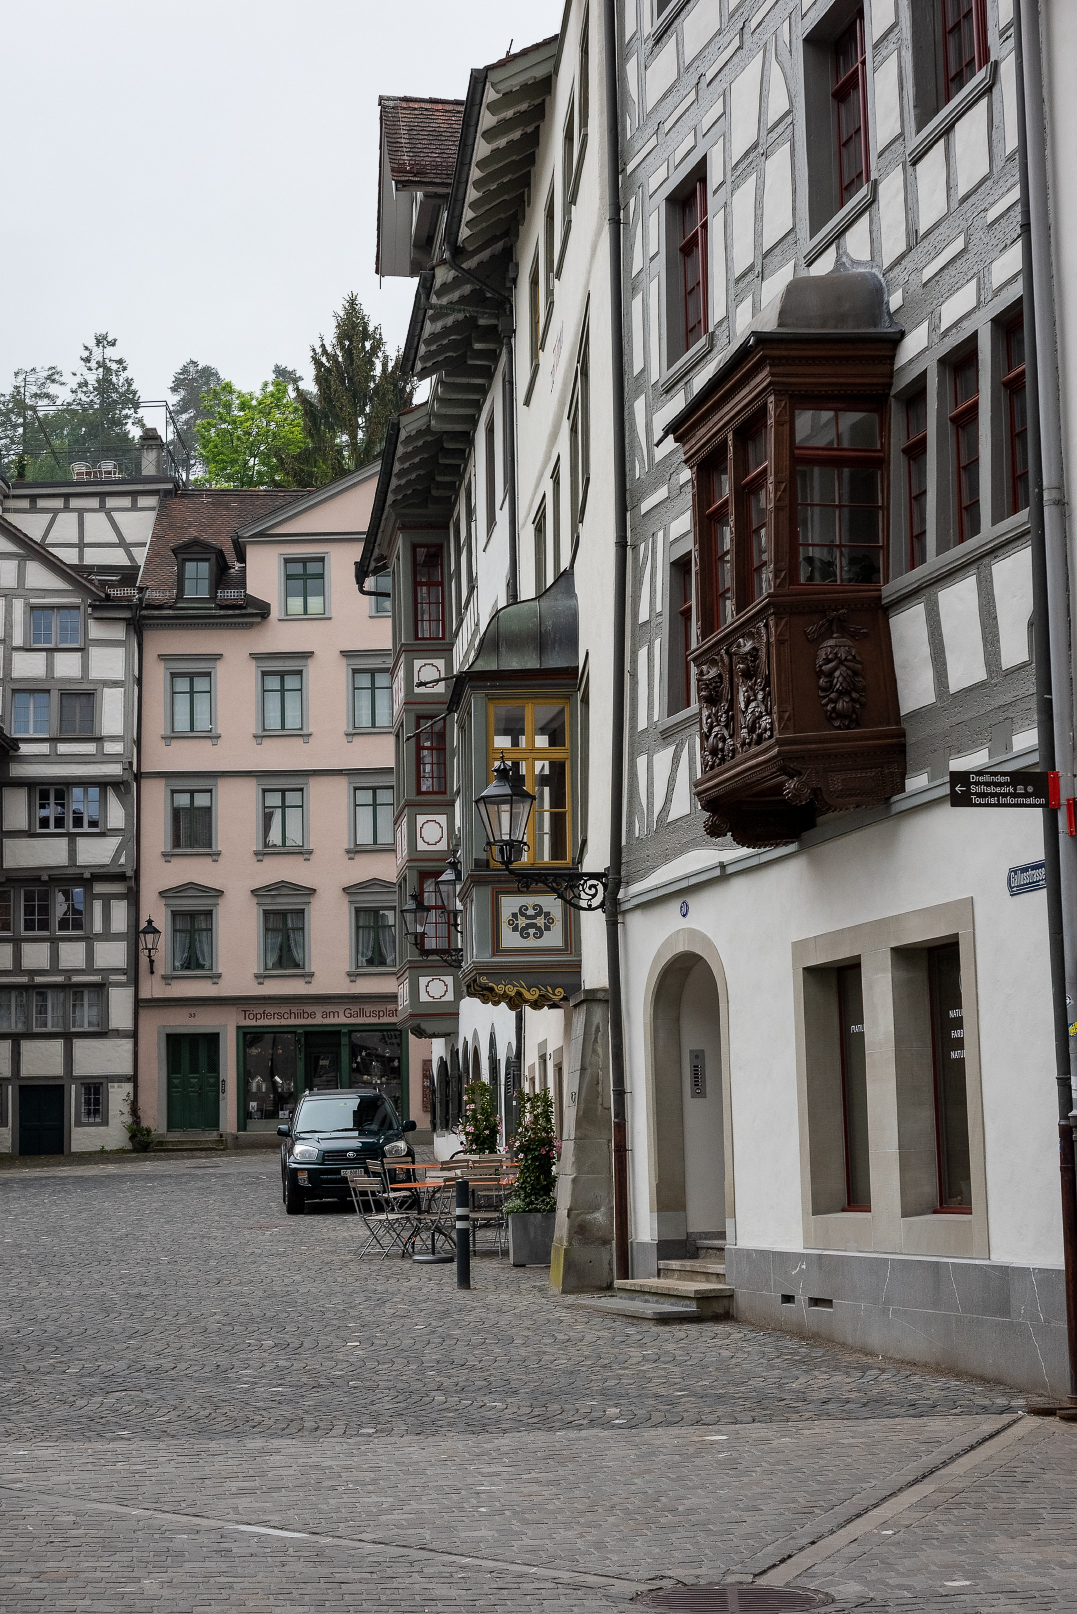 The facades of the buildings in old town St. Gallen, Switzerland.